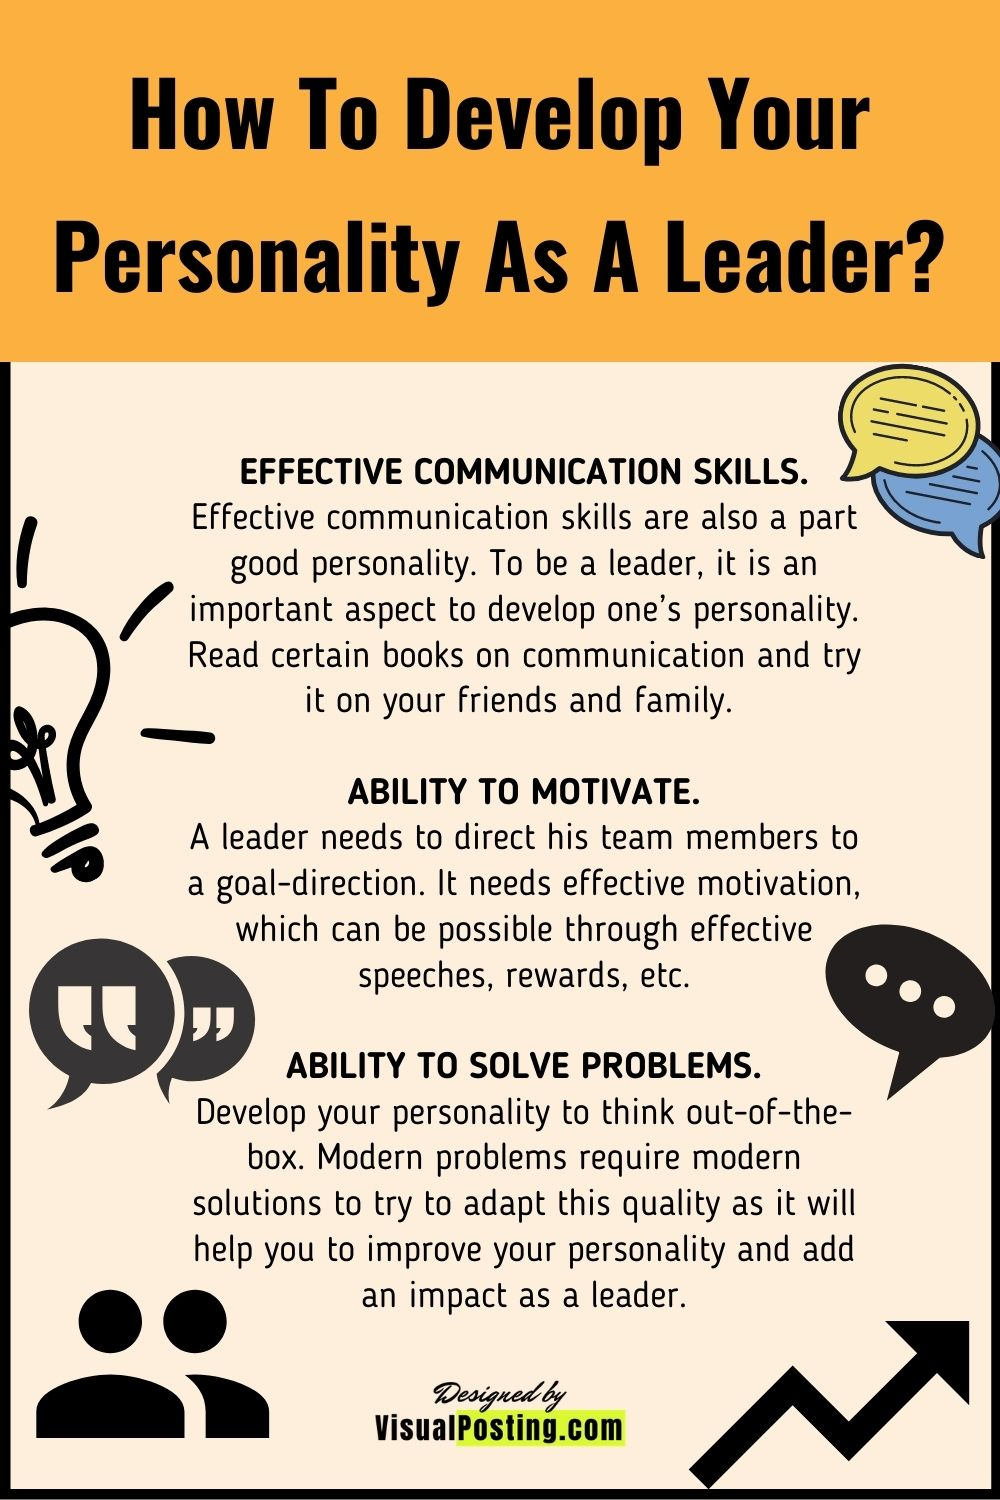 How To Develop Your Personality As A Leader?.jpg